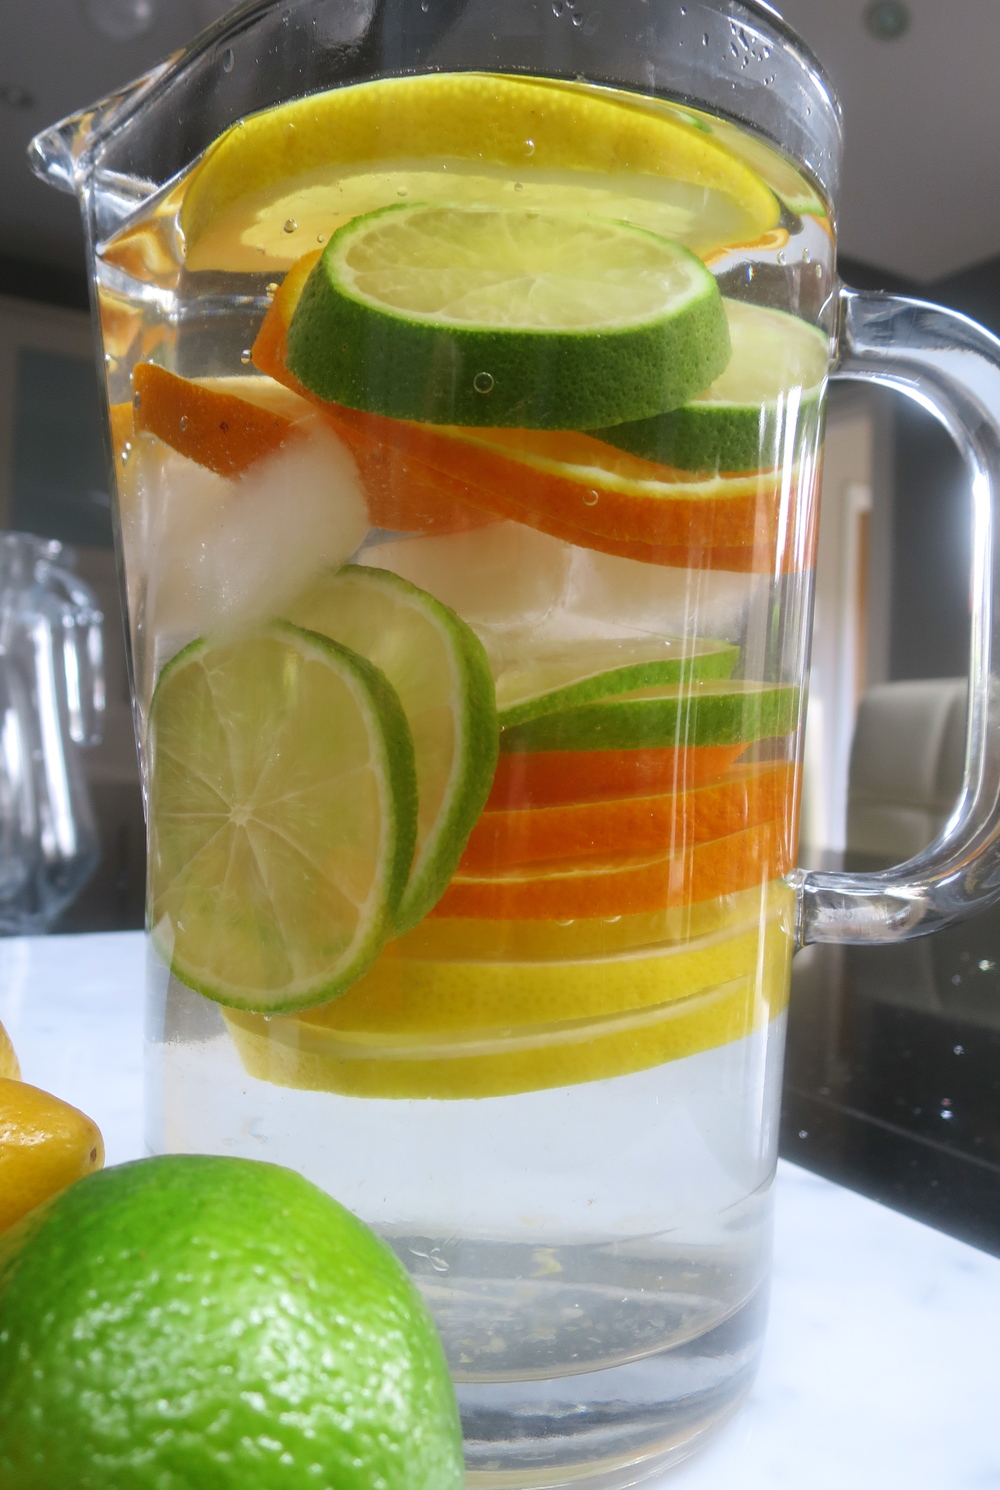 Lemon, Lime and Orange.